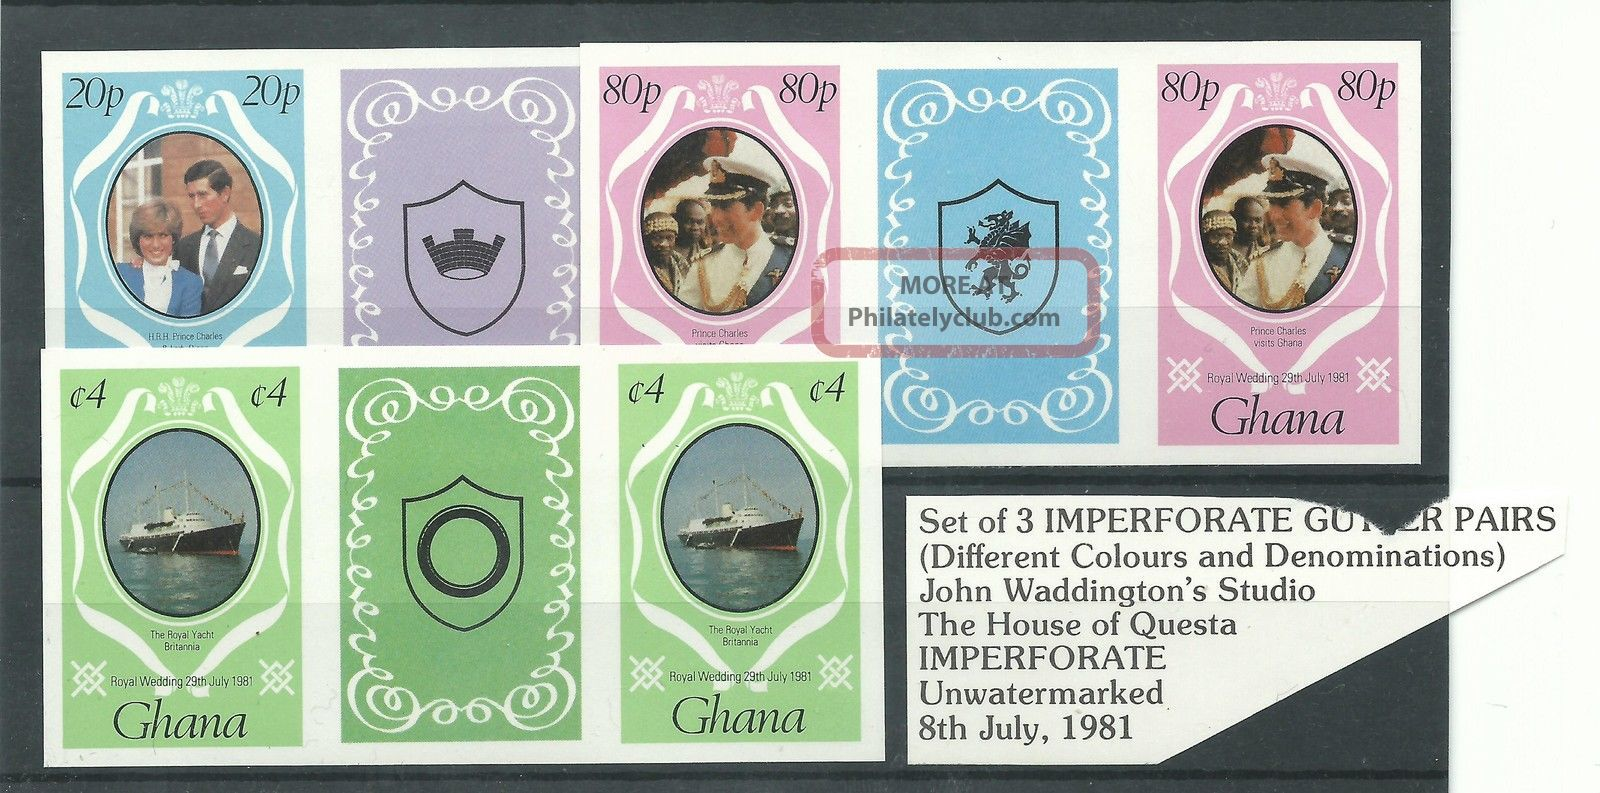 Ghana - 1981 - Imperforate Gutter Tab Pairs - Charles & Diana Wedding - Umm Africa photo